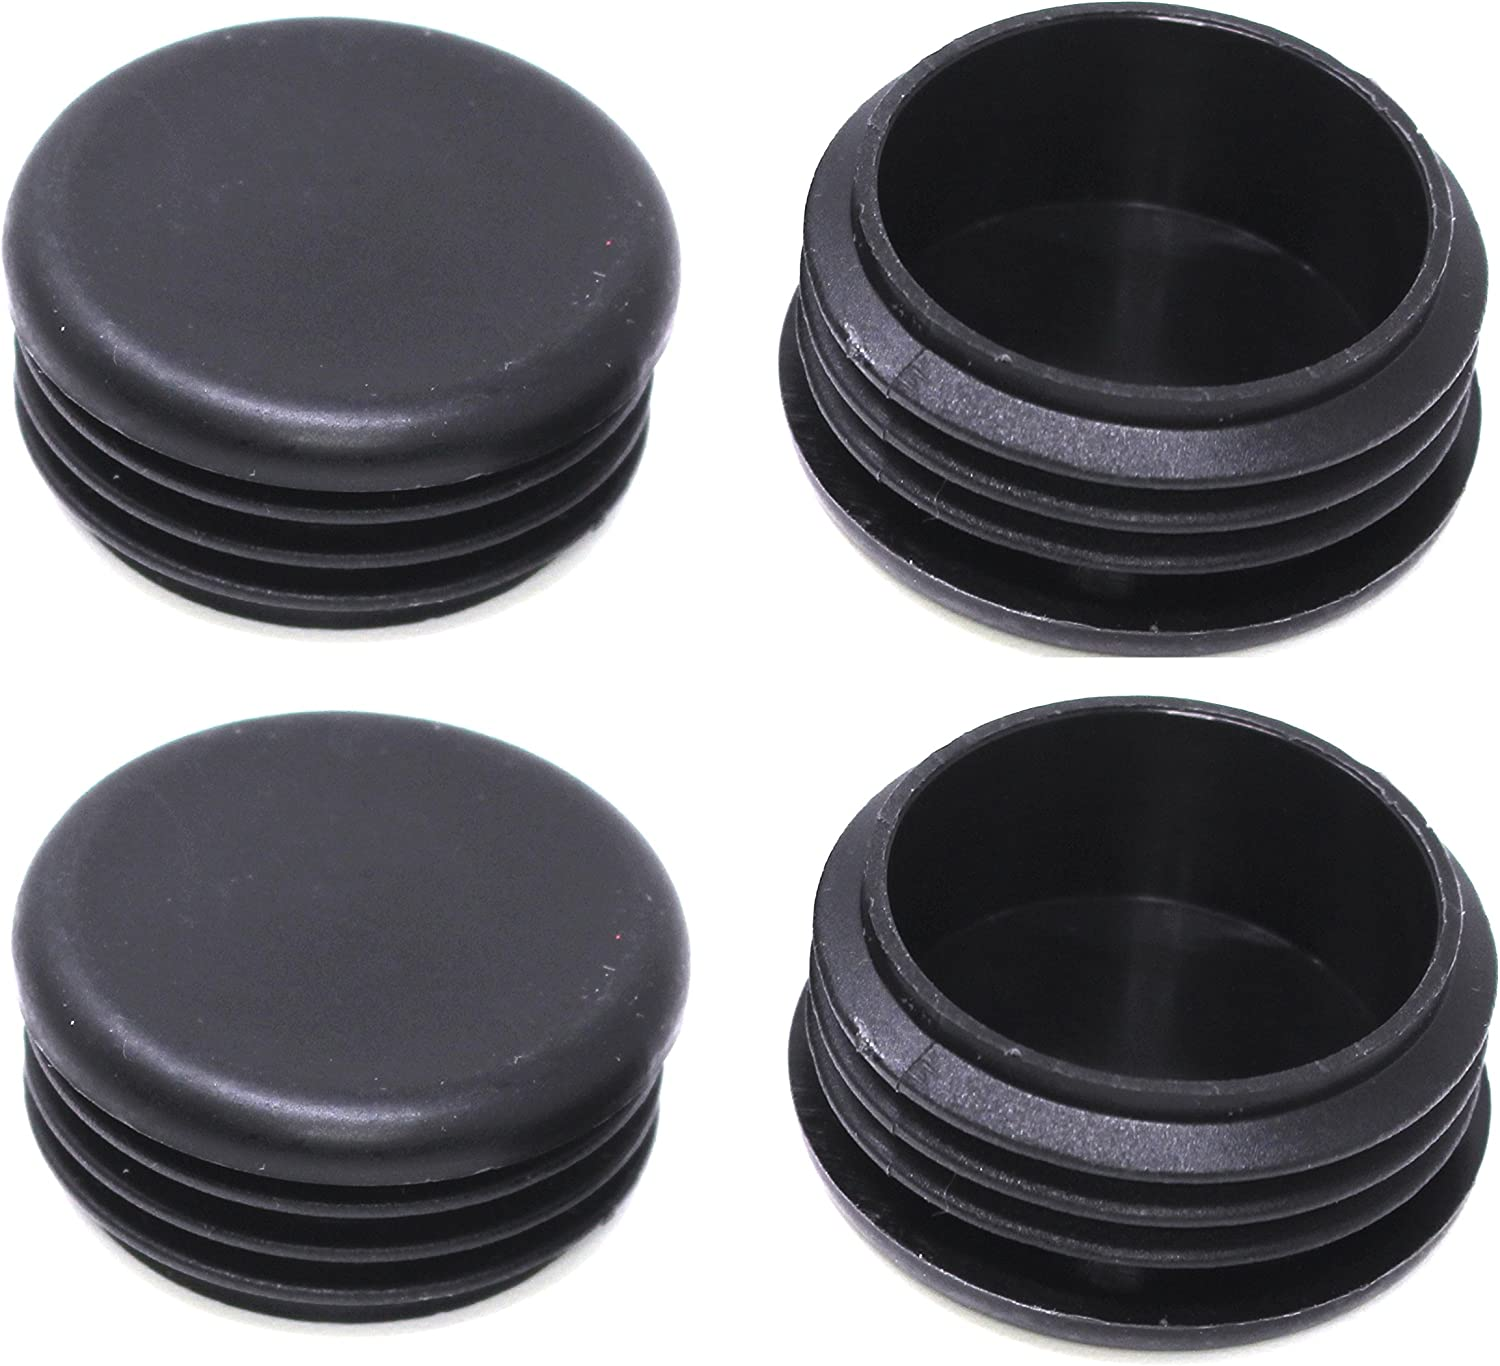 12 JSP Manufacturing Jeep Wrangler TJ New Frame Hole Cover Plugs Keep Out mud for All 1997 Through 2006 Models